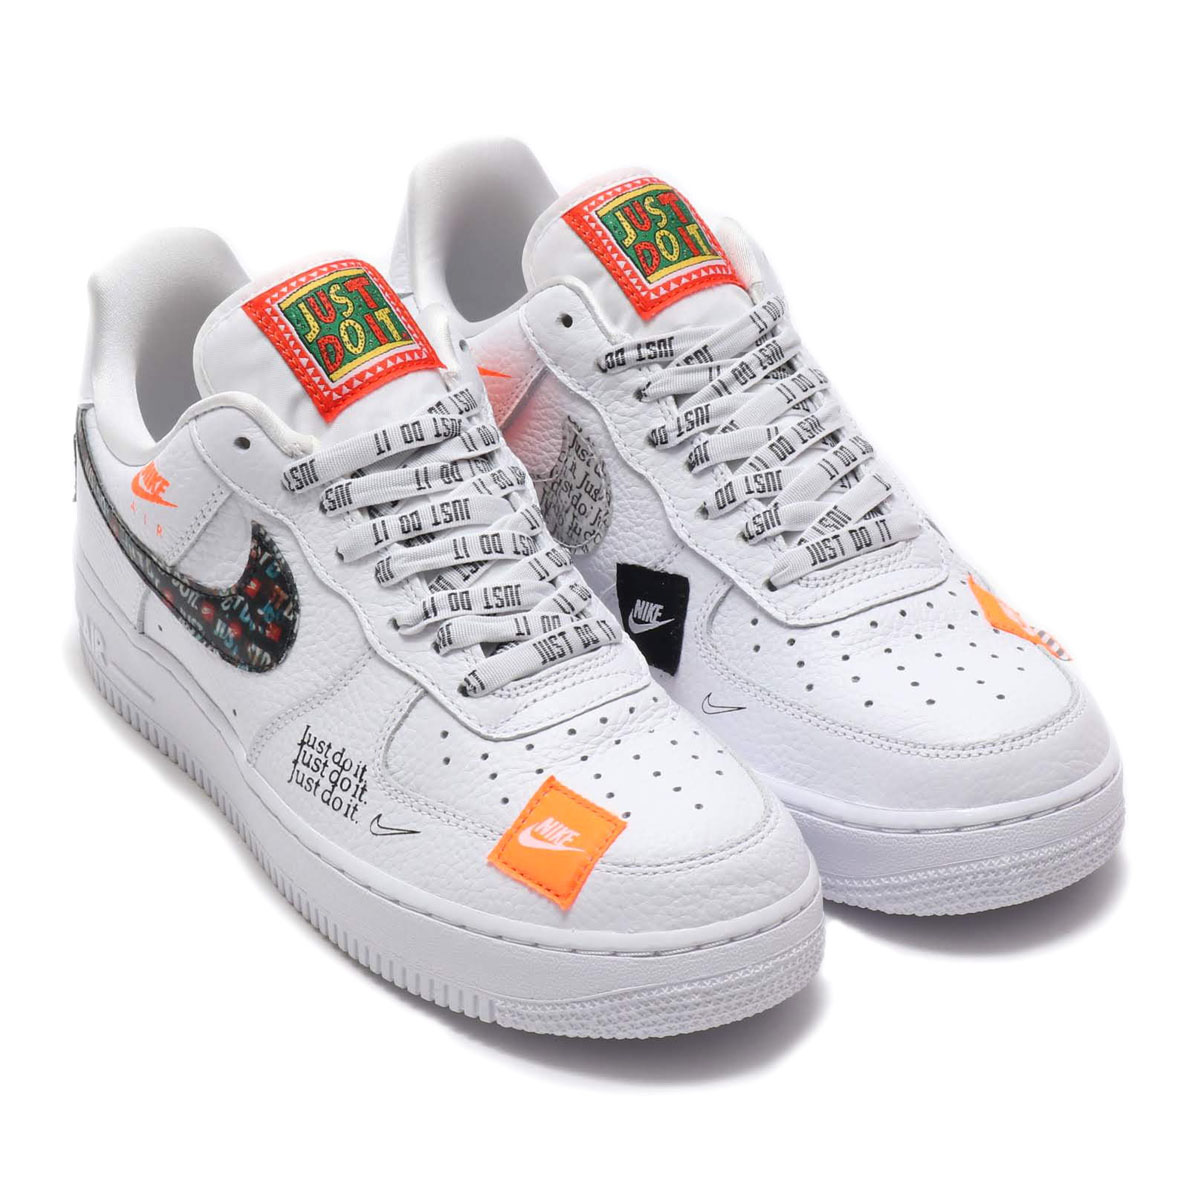 a074db15459 atmos pink  NIKE AIR FORCE 1  07 PRM JDI (Nike air force 1 07 premium JDI)  WHITE WHITE-BLACK-TOTAL ORANGE 18FA-S